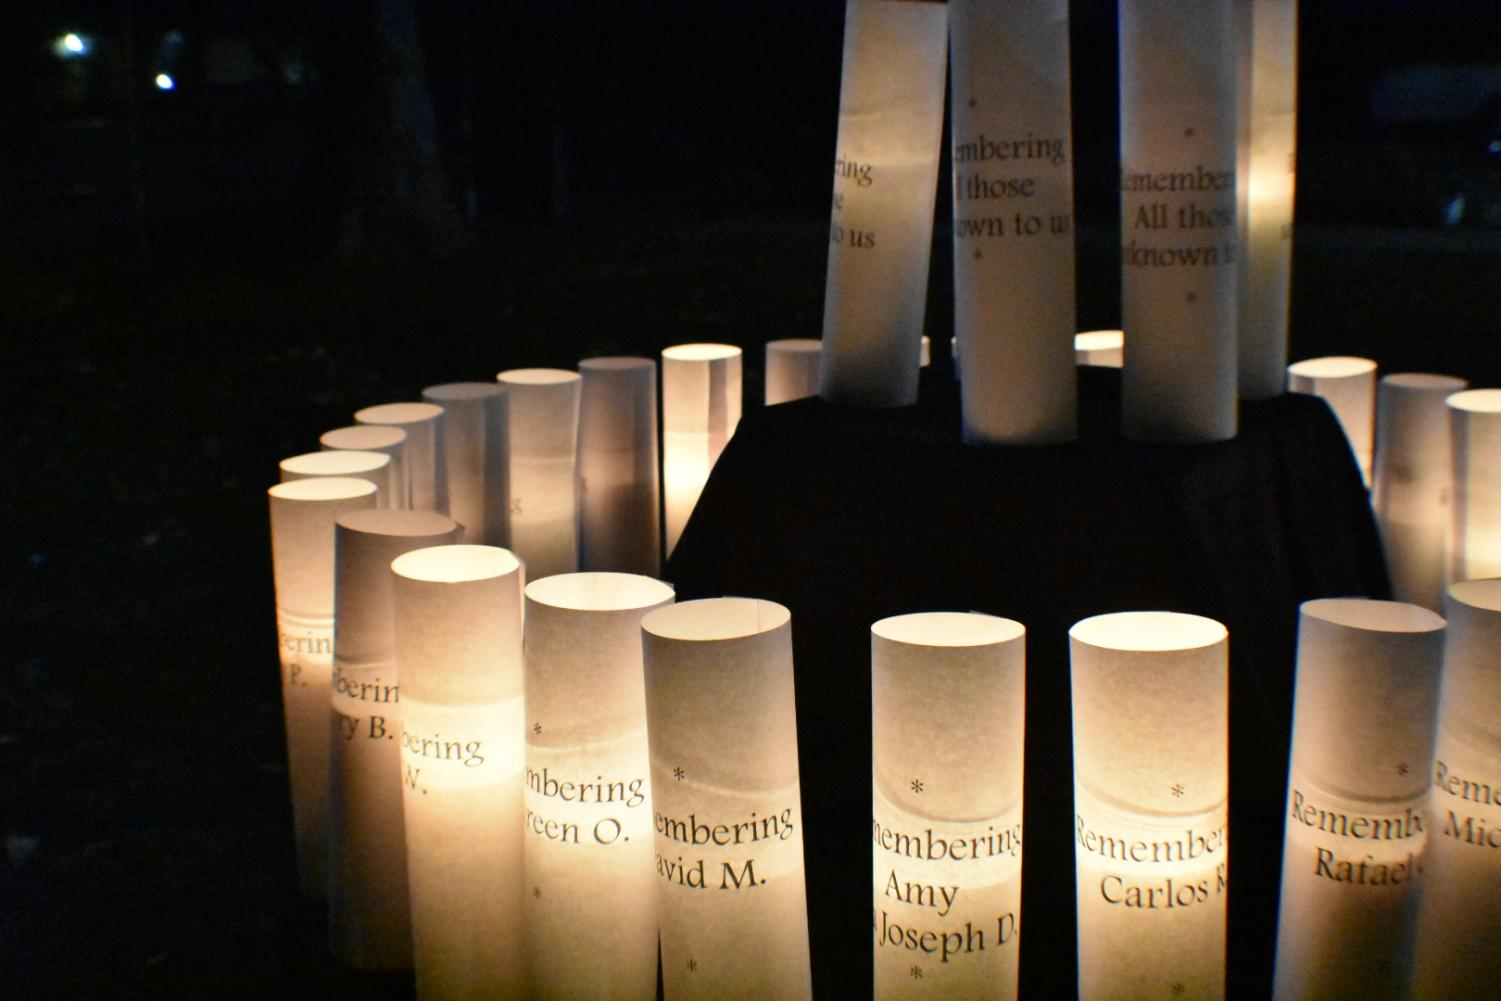 The shrine included the names of more than 24 people who passed away in the Alameda and Santa Clara Counties this year.